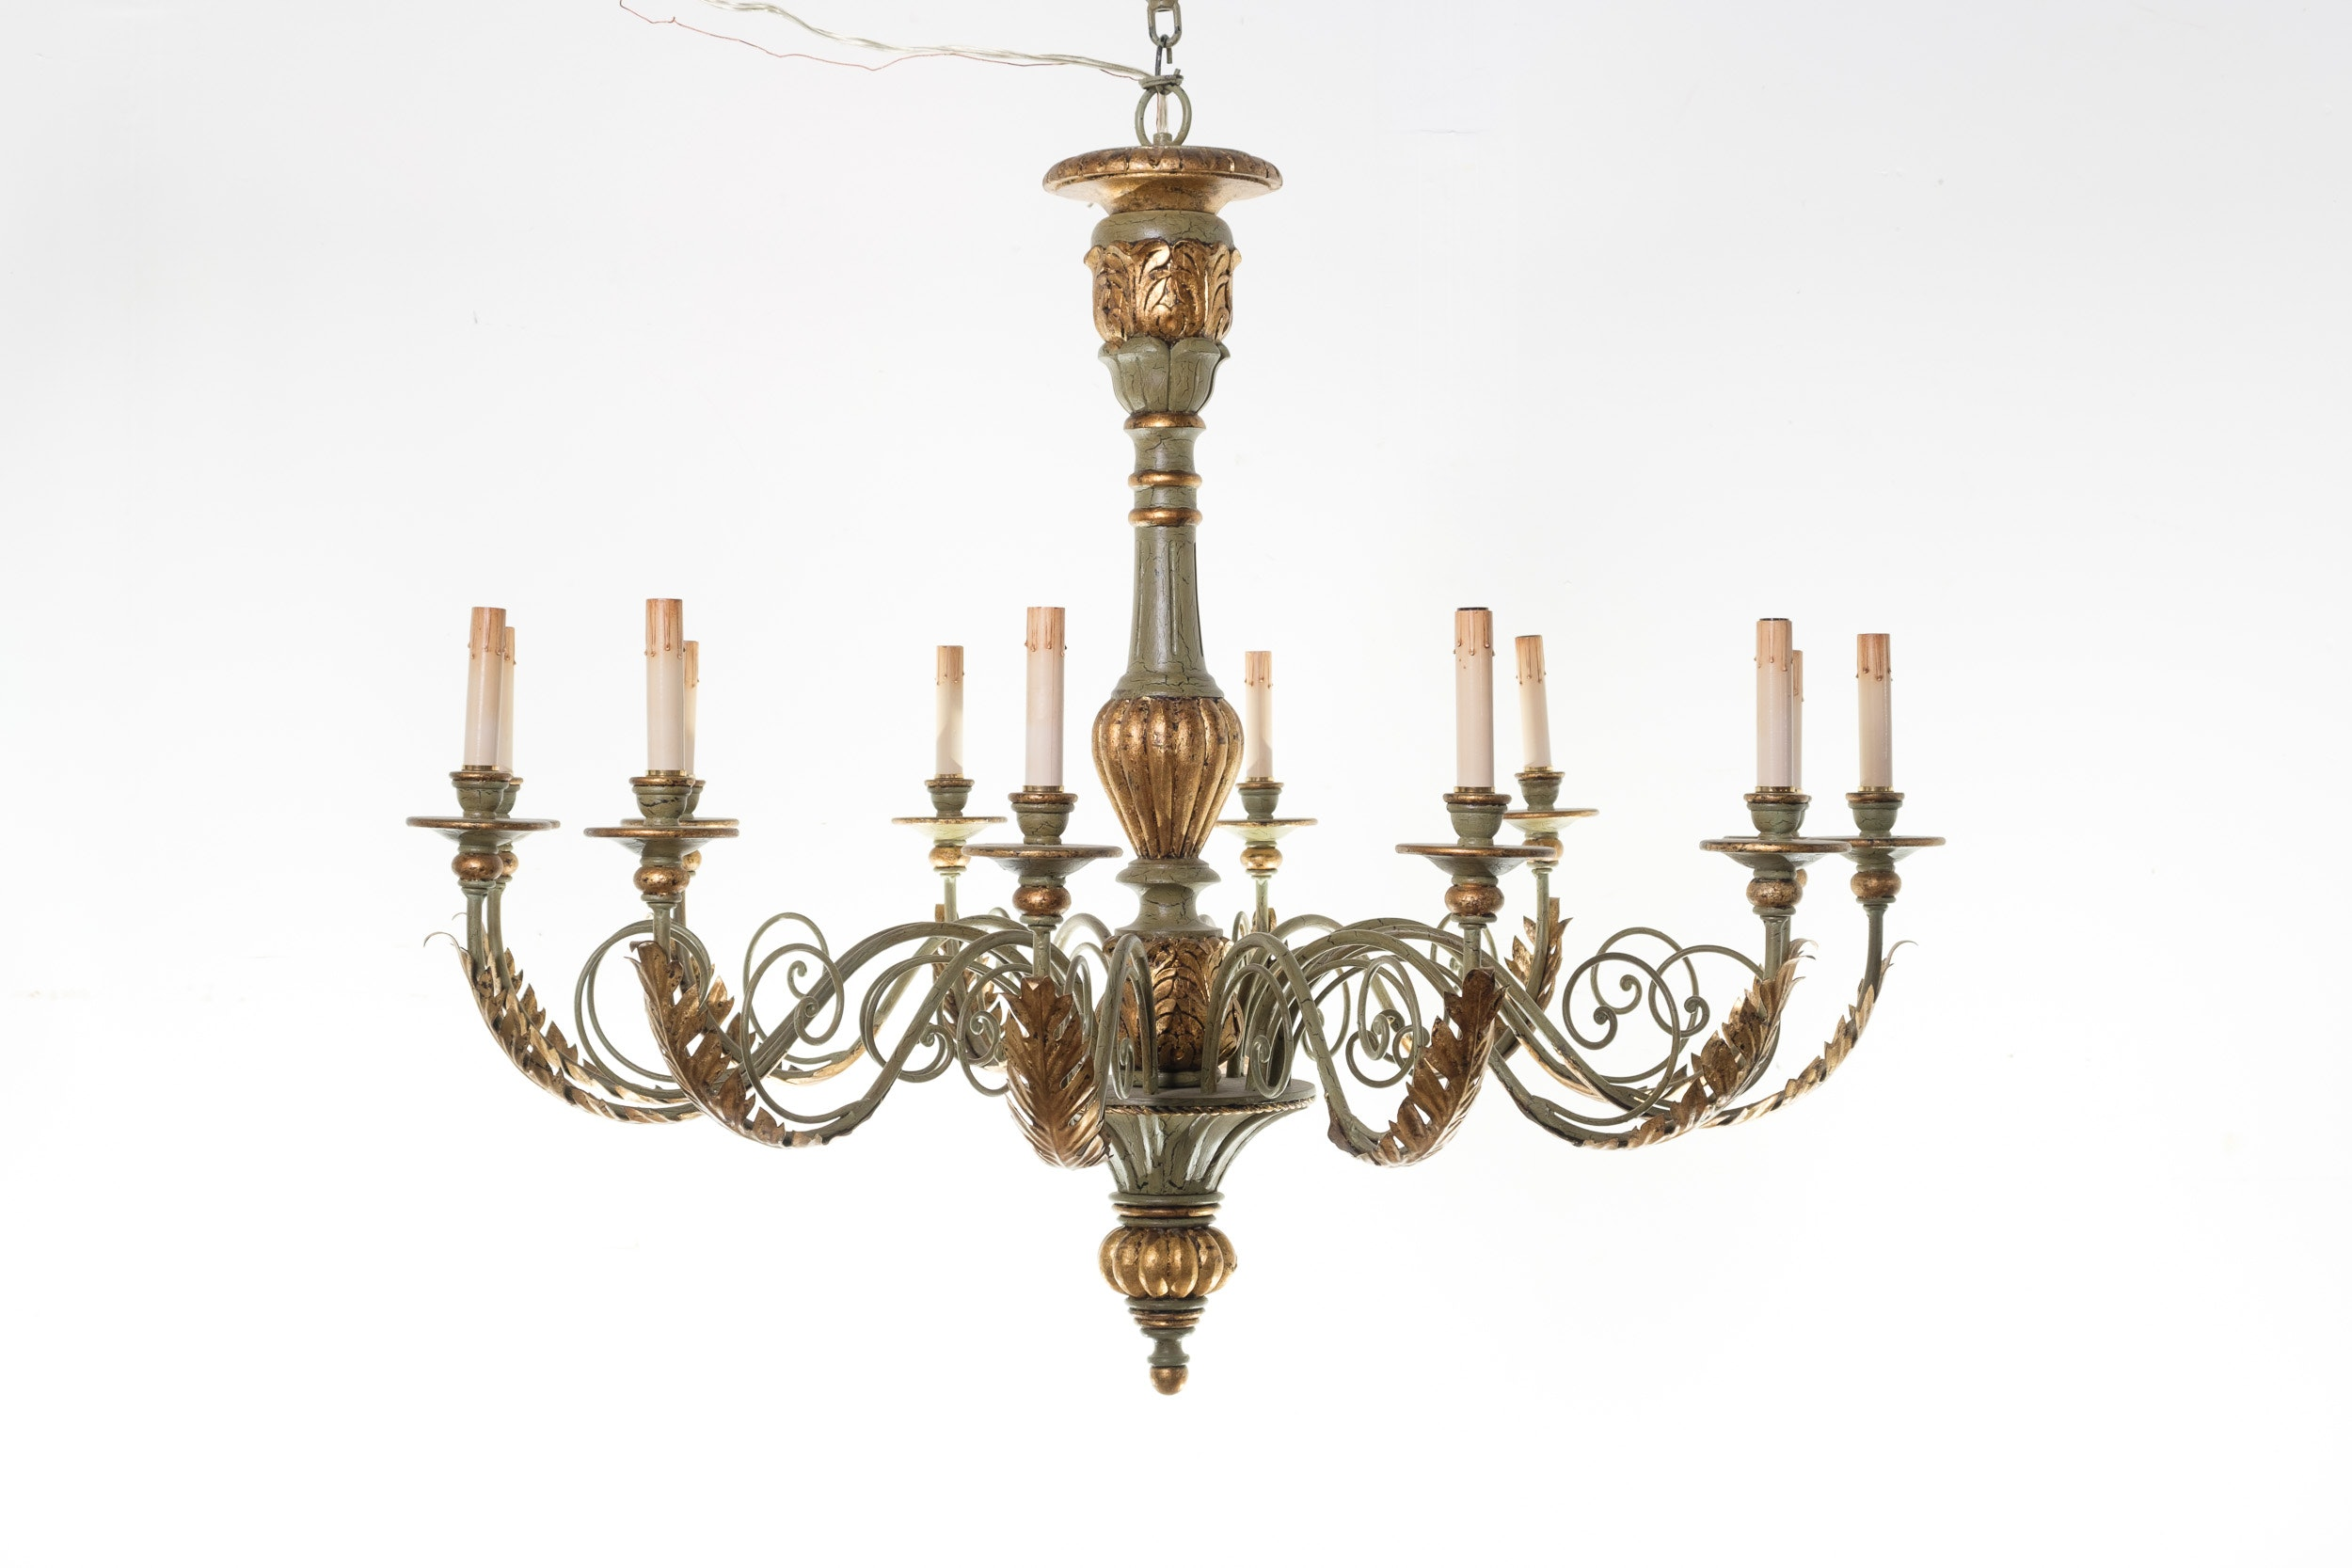 Antiqued Green and Gold Tone Electric Chandelier